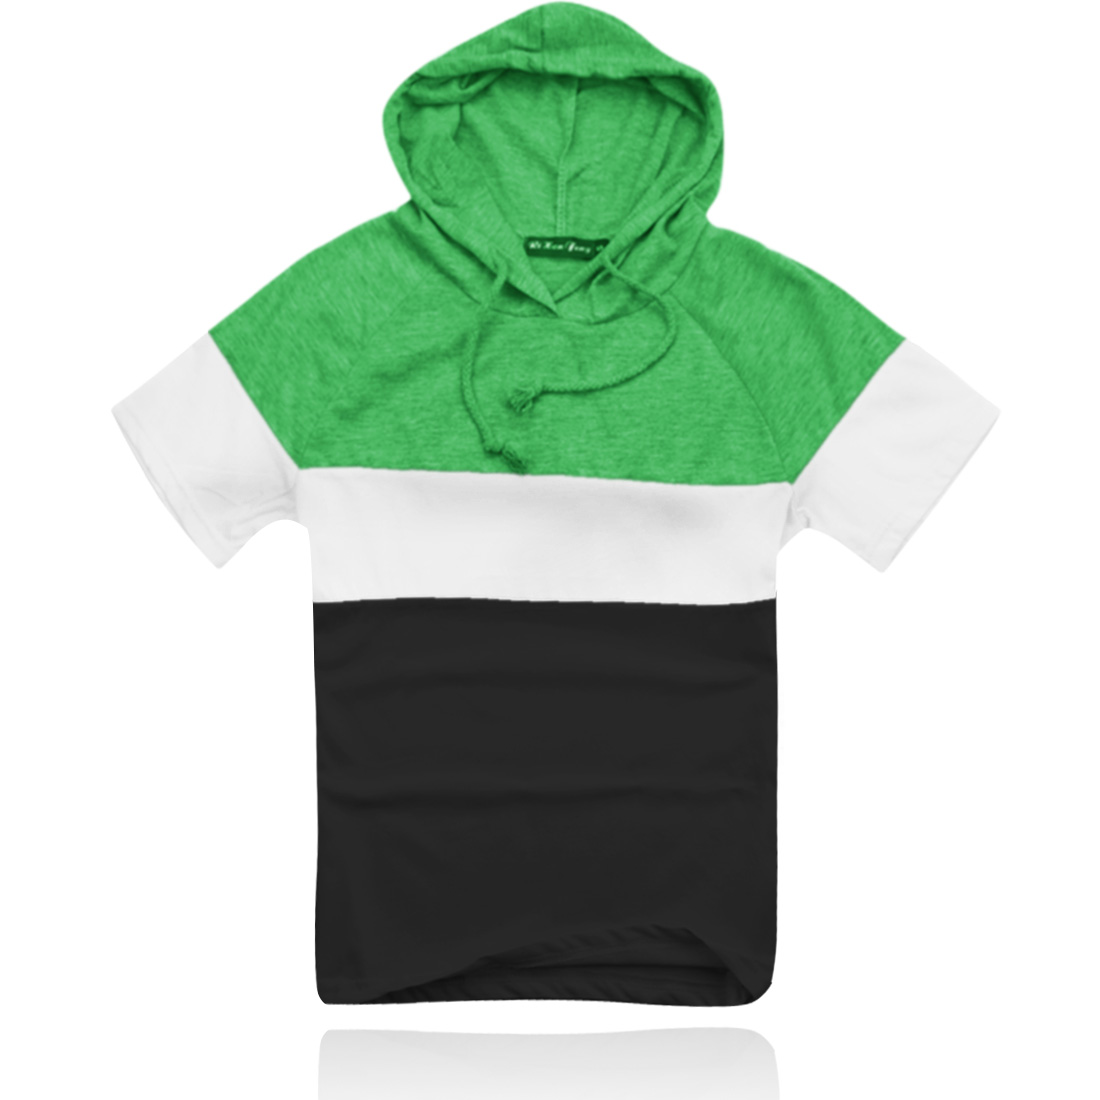 Boy Summer Green White Black Short Sleeves Hooded Shirt XL